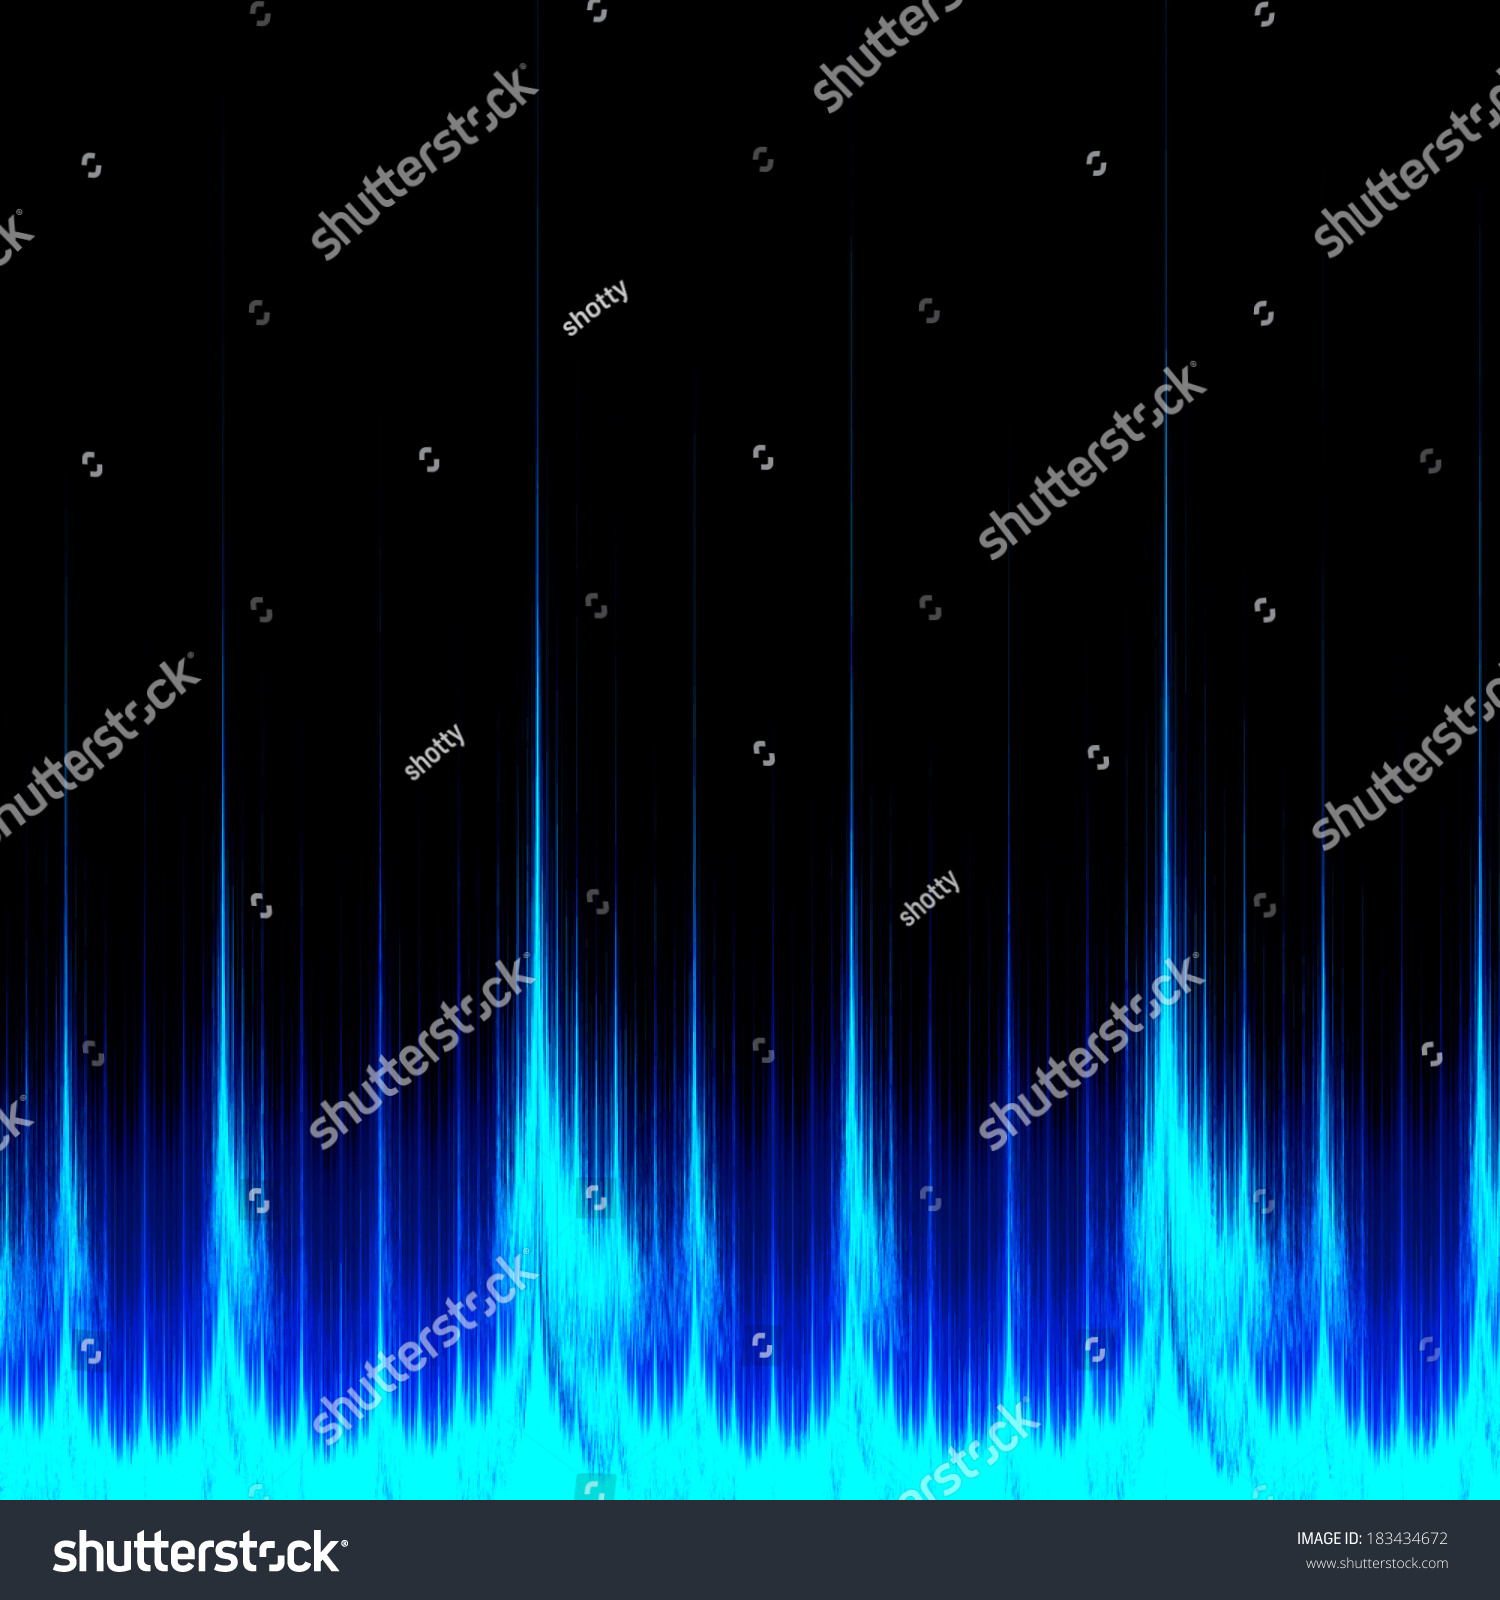 Royalty Free Stock Illustration of Abstract Visualization Digital